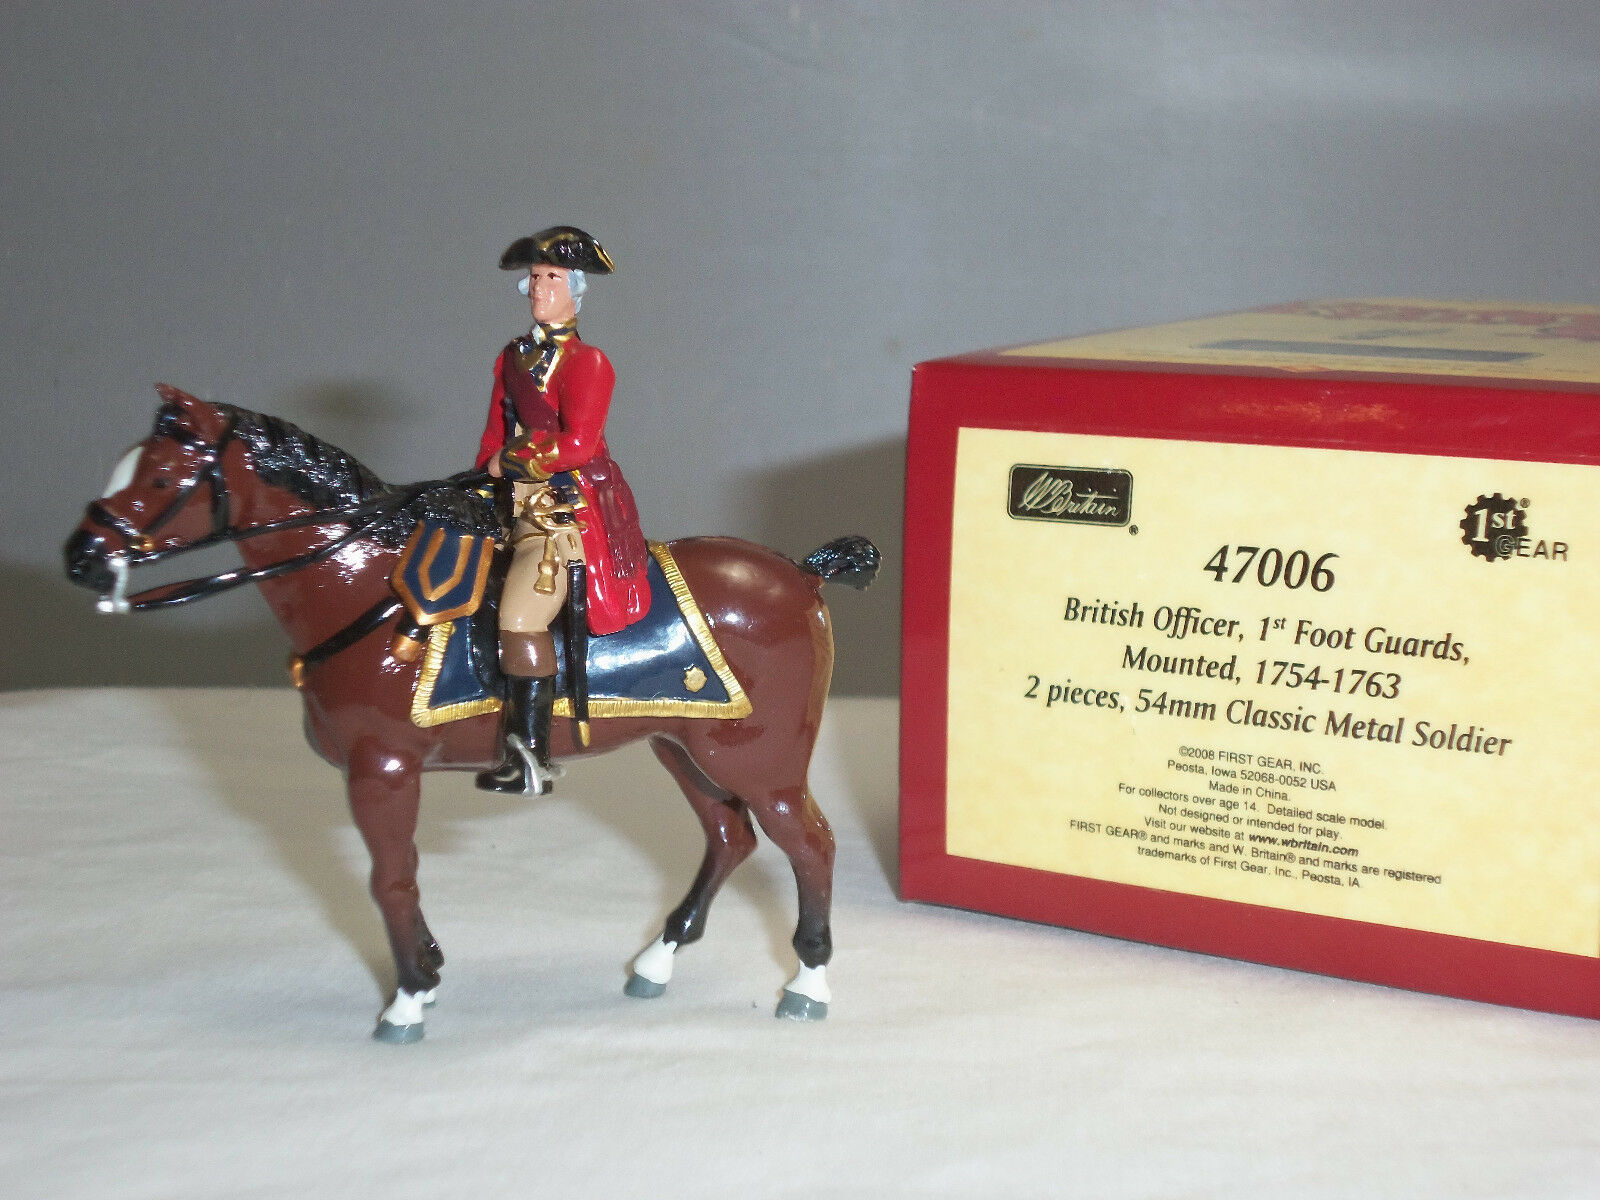 BRITAINS 47006 REDCOATS BRITISH 1ST FOOT GUARDS OFFICER MOUNTED 1754-63 SOLDIER